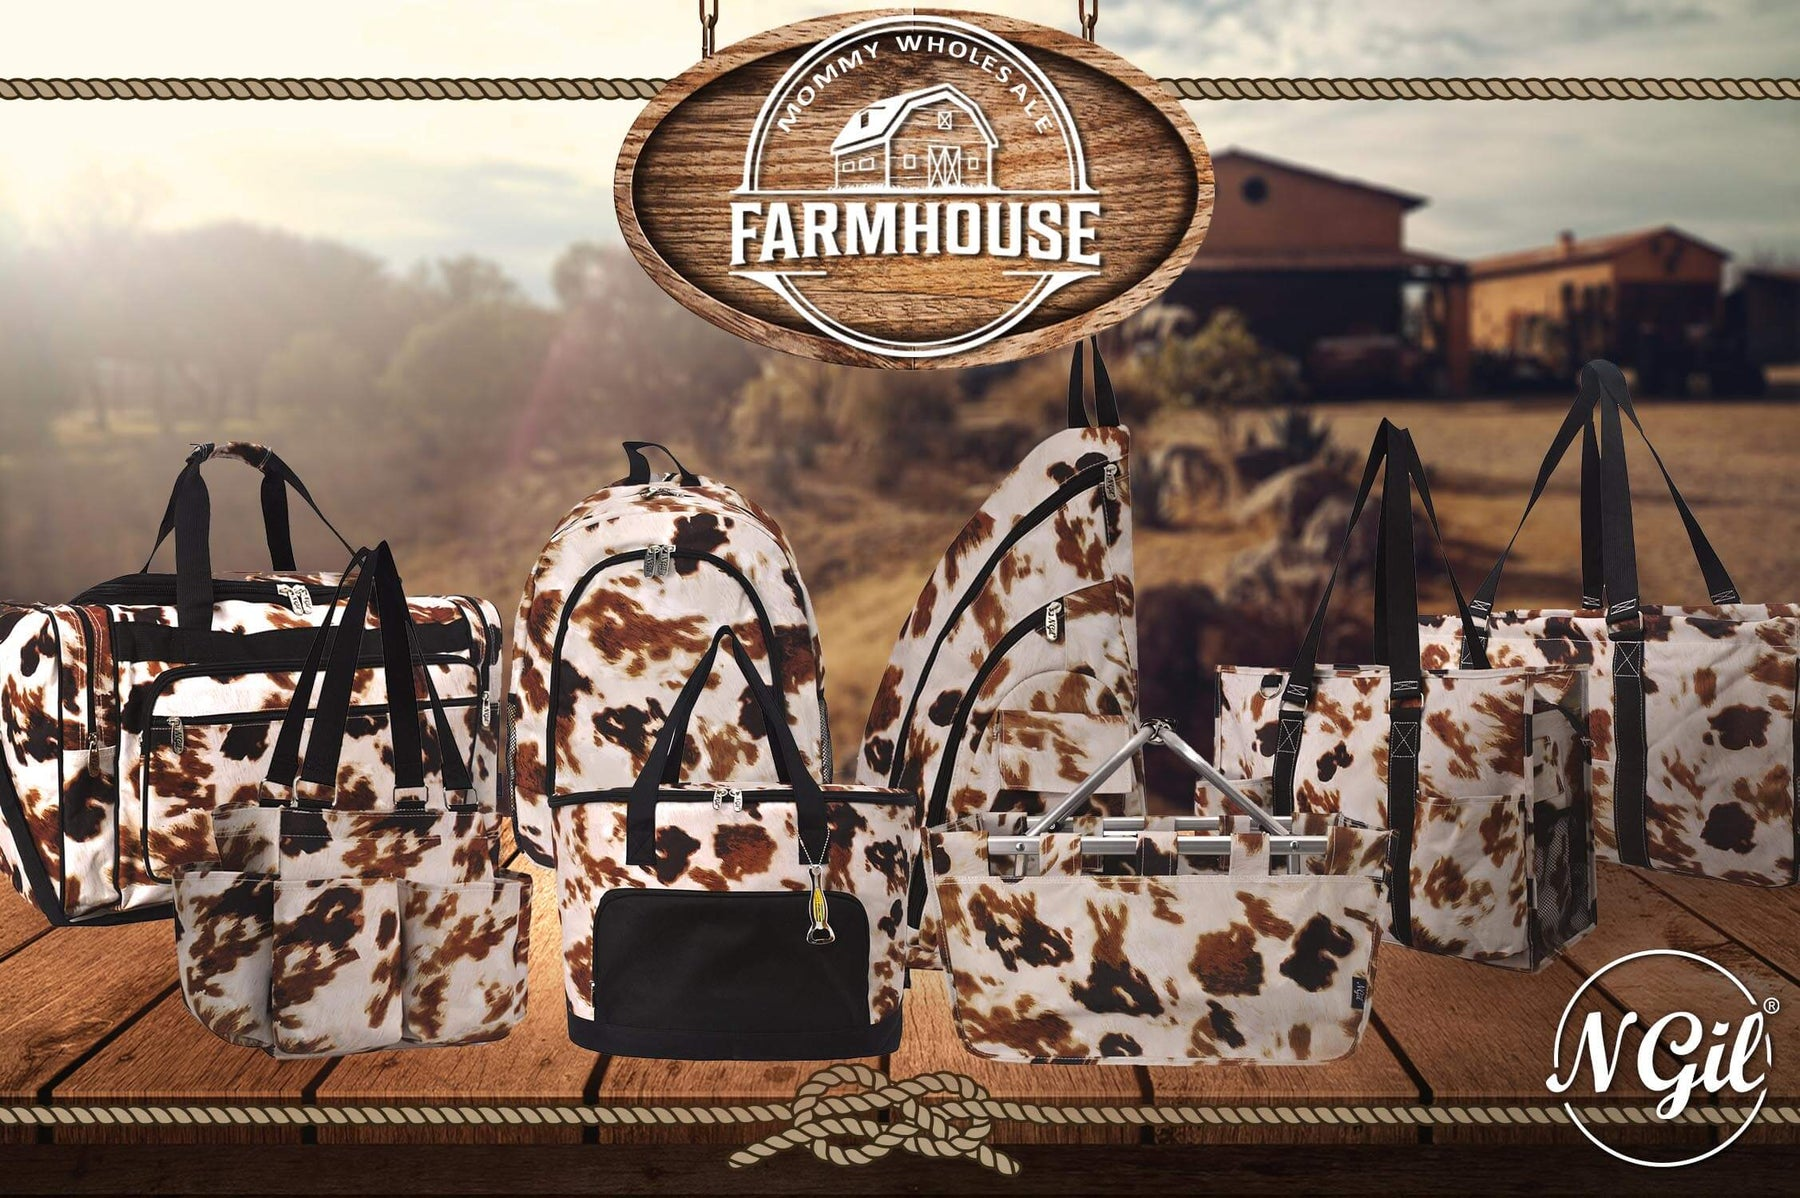 Wholesale Cowgirl Purse, Cheap Cow Print Handbags, Farmhouse Style Gift Bags, Farm Picnic Basket, Cheap Cowboy Themed Gifts, Wholesale Cheap Cow Print Leather Bags for Bulk